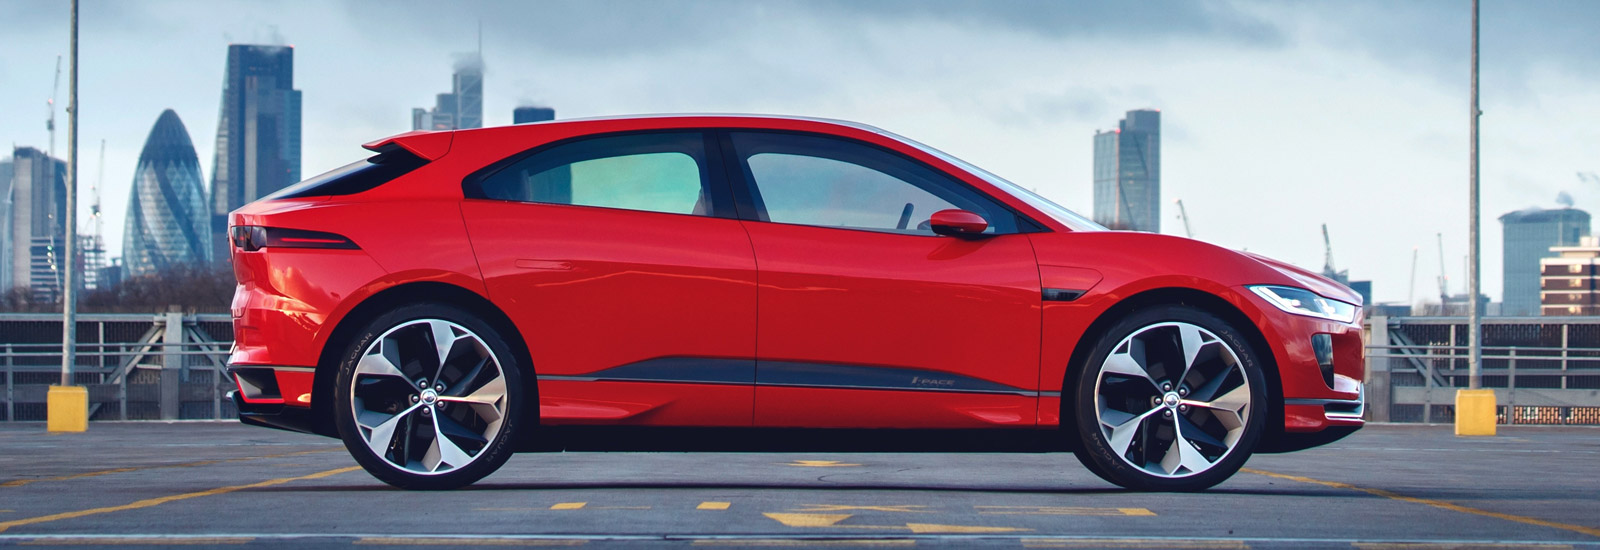 2018 jaguar i pace price.  price 2018 jaguar ipace price and release date throughout jaguar i pace